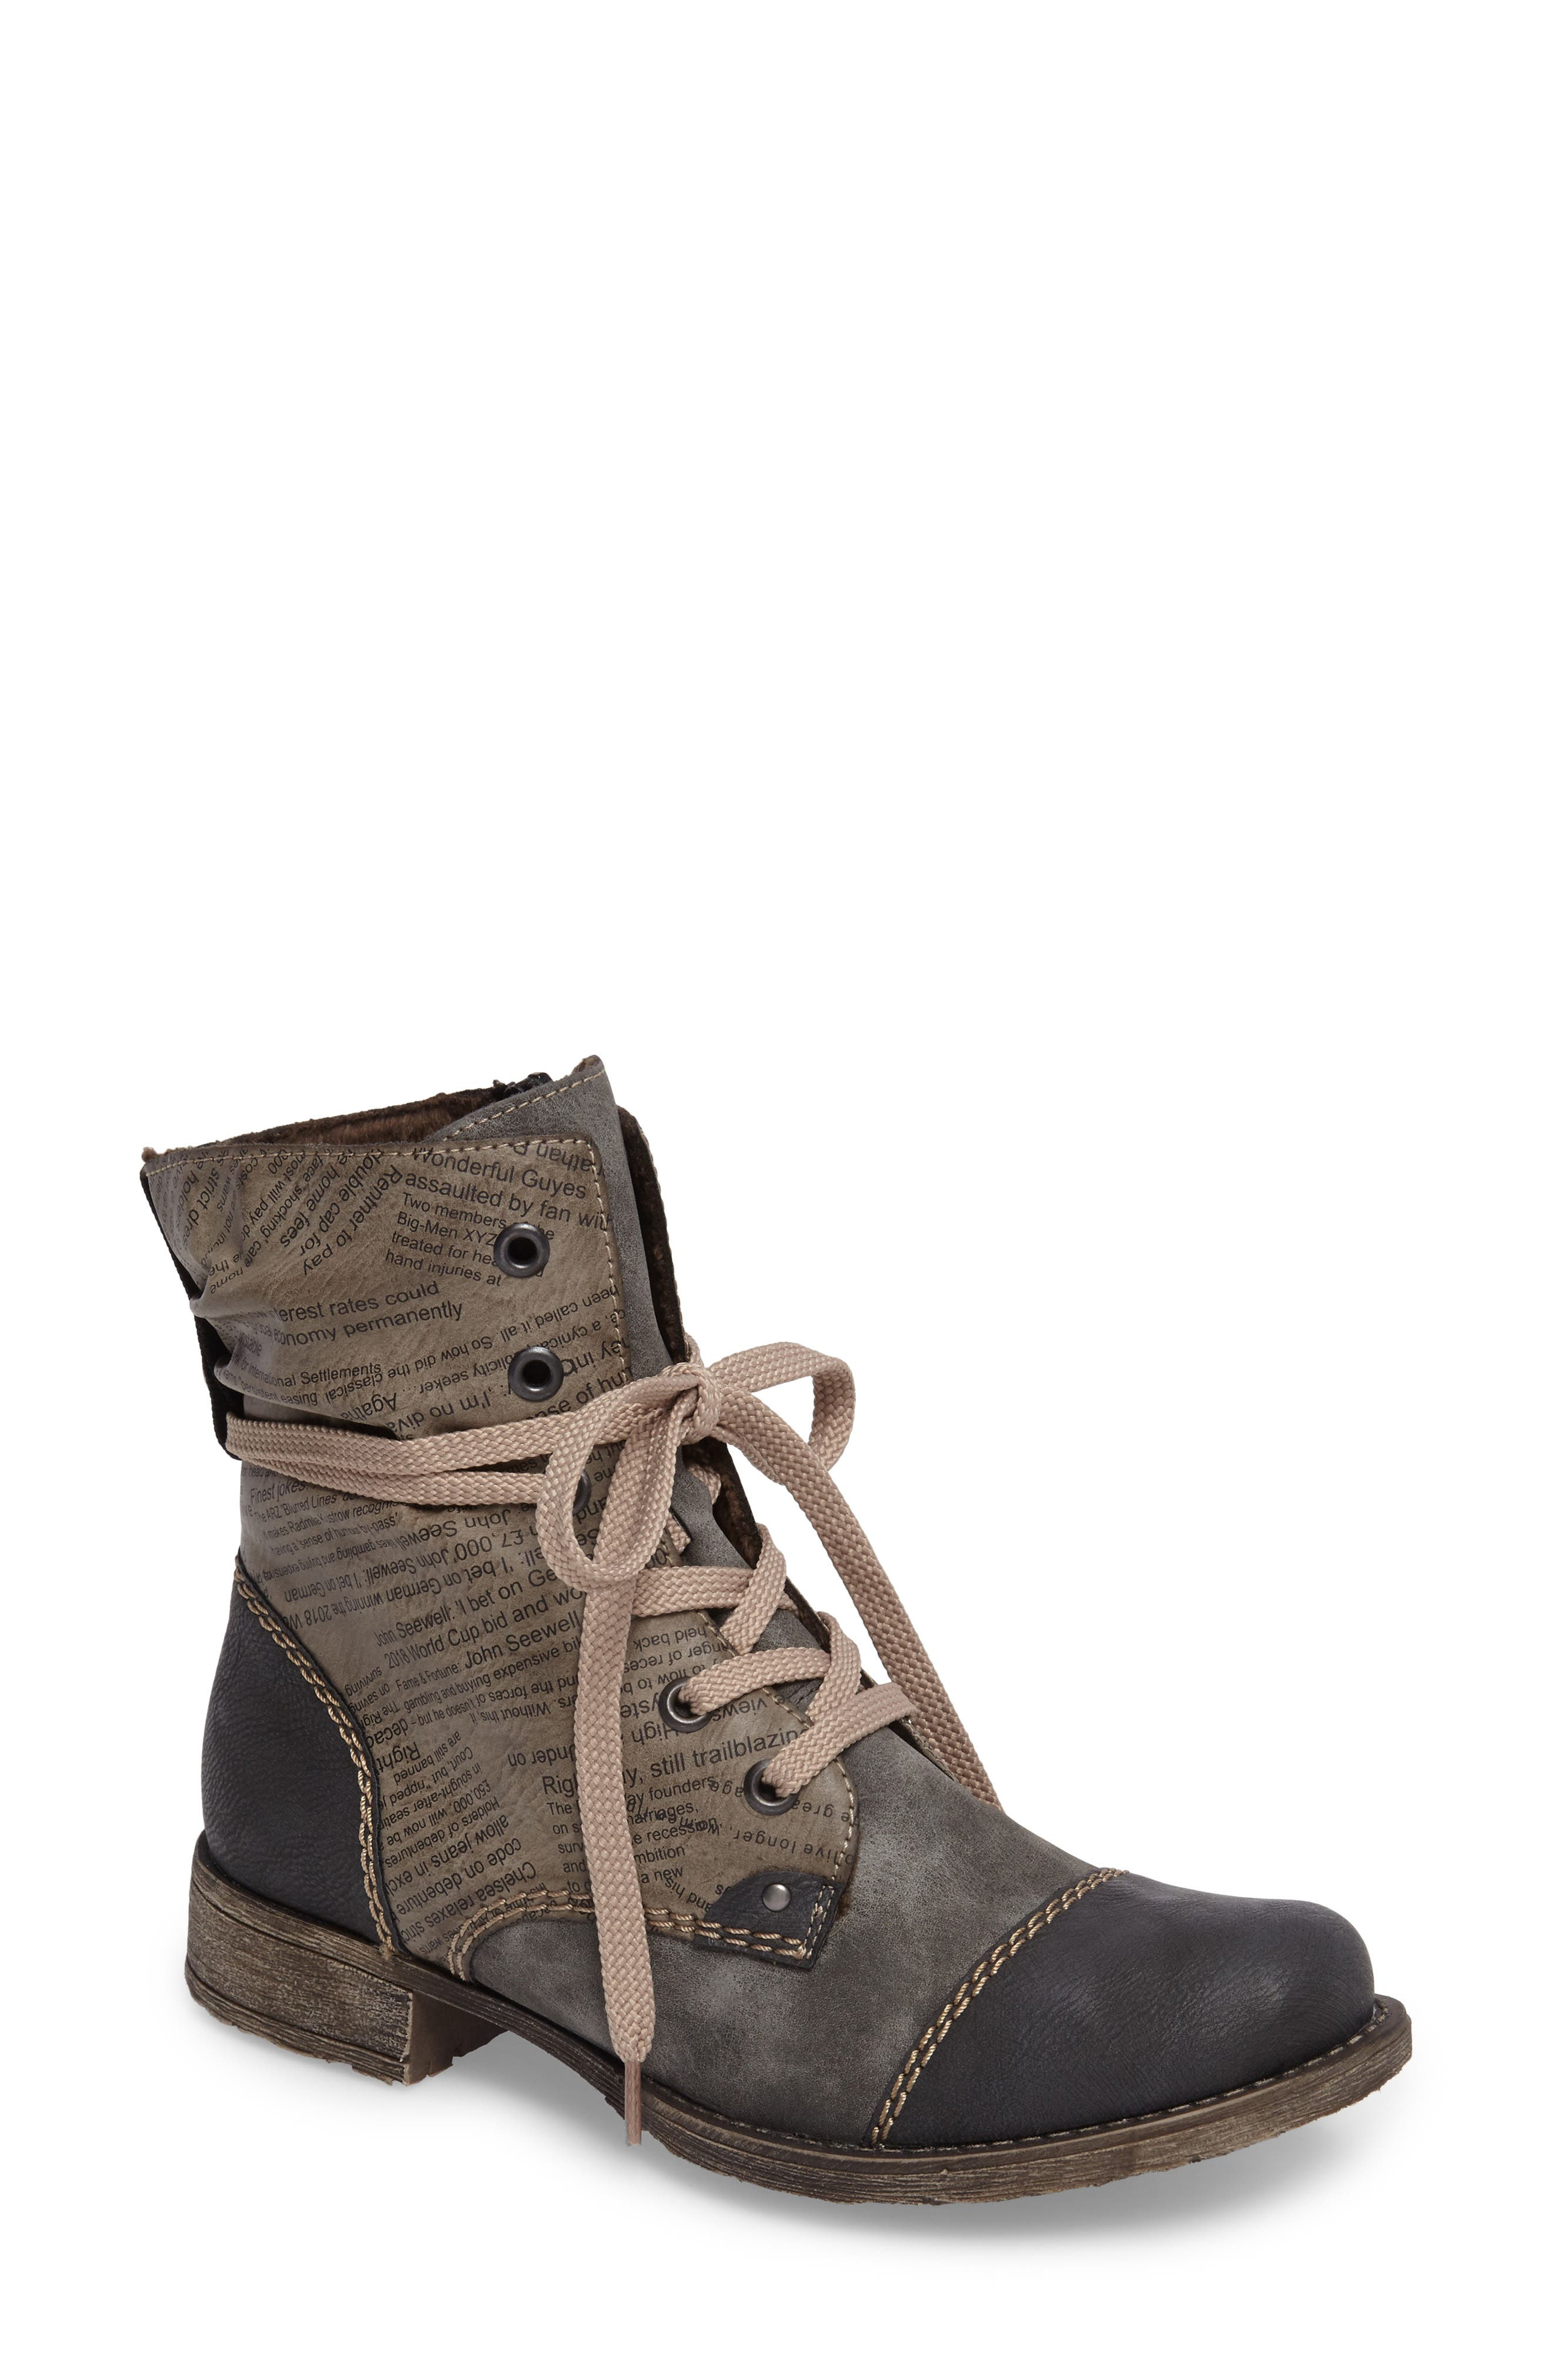 Payton 22 Lace-Up Boot,                         Main,                         color, Smoke Faux Leather